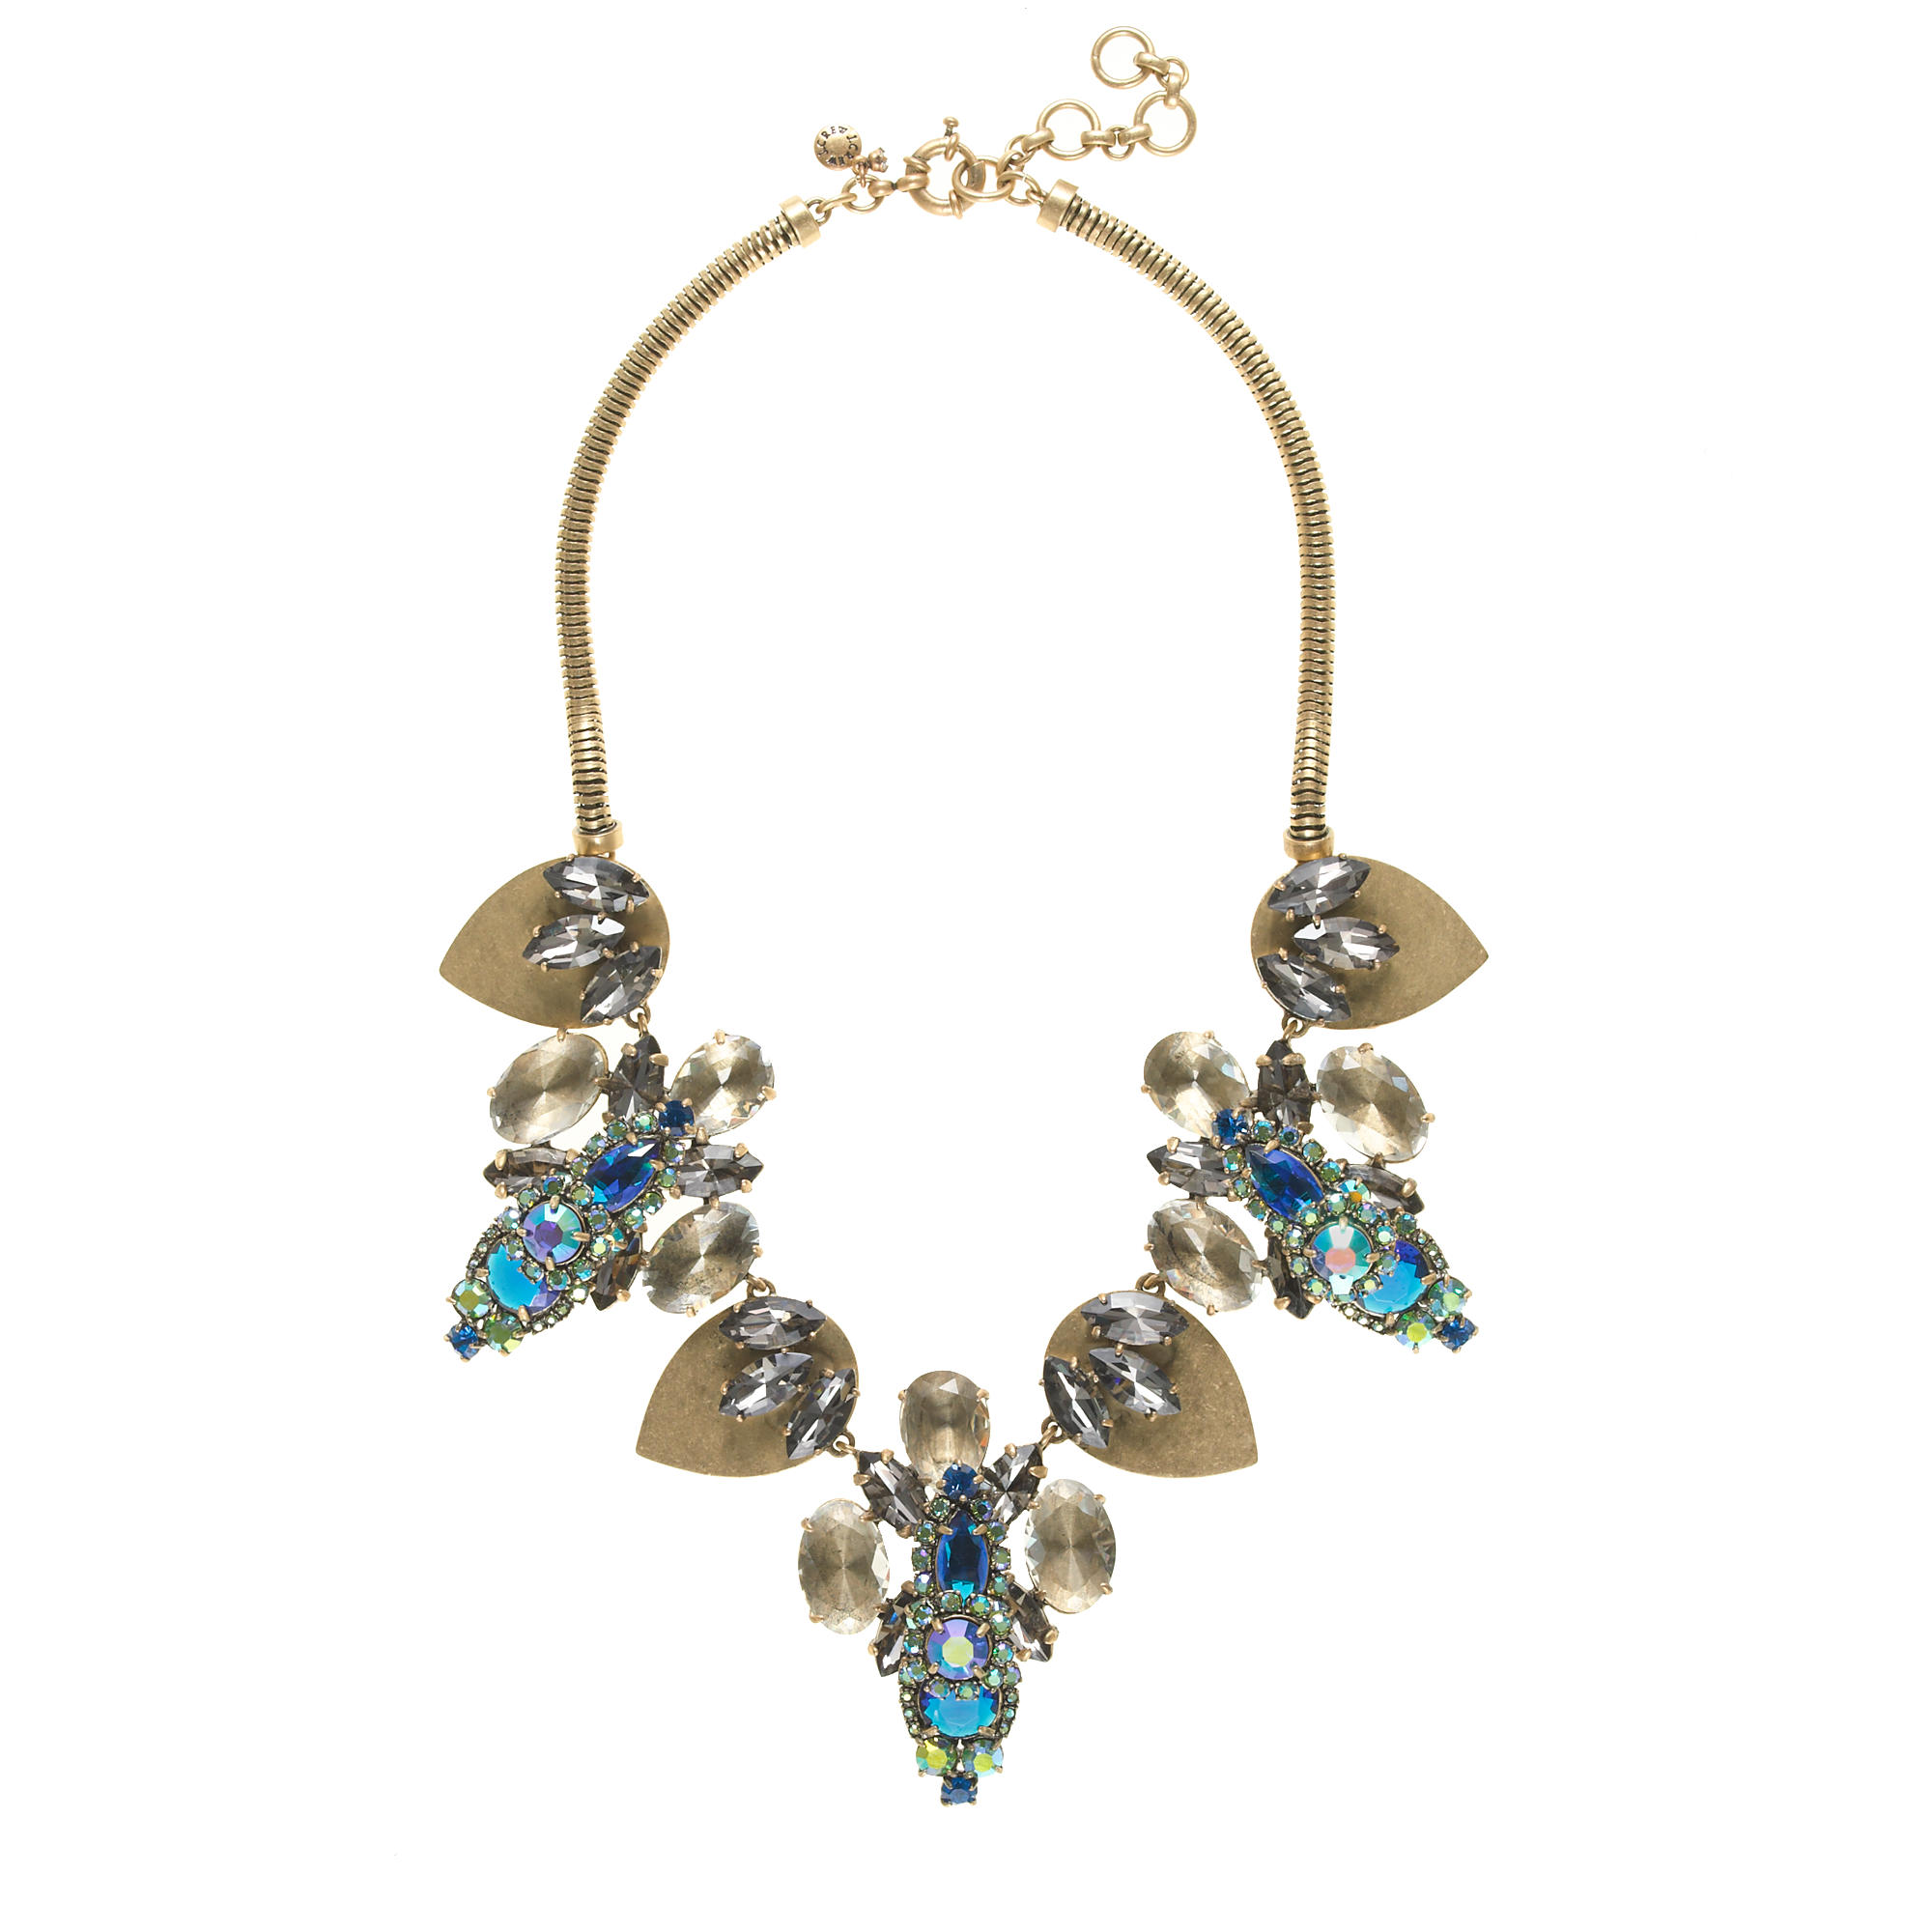 Riviera necklace j crew for J crew jewelry 2015